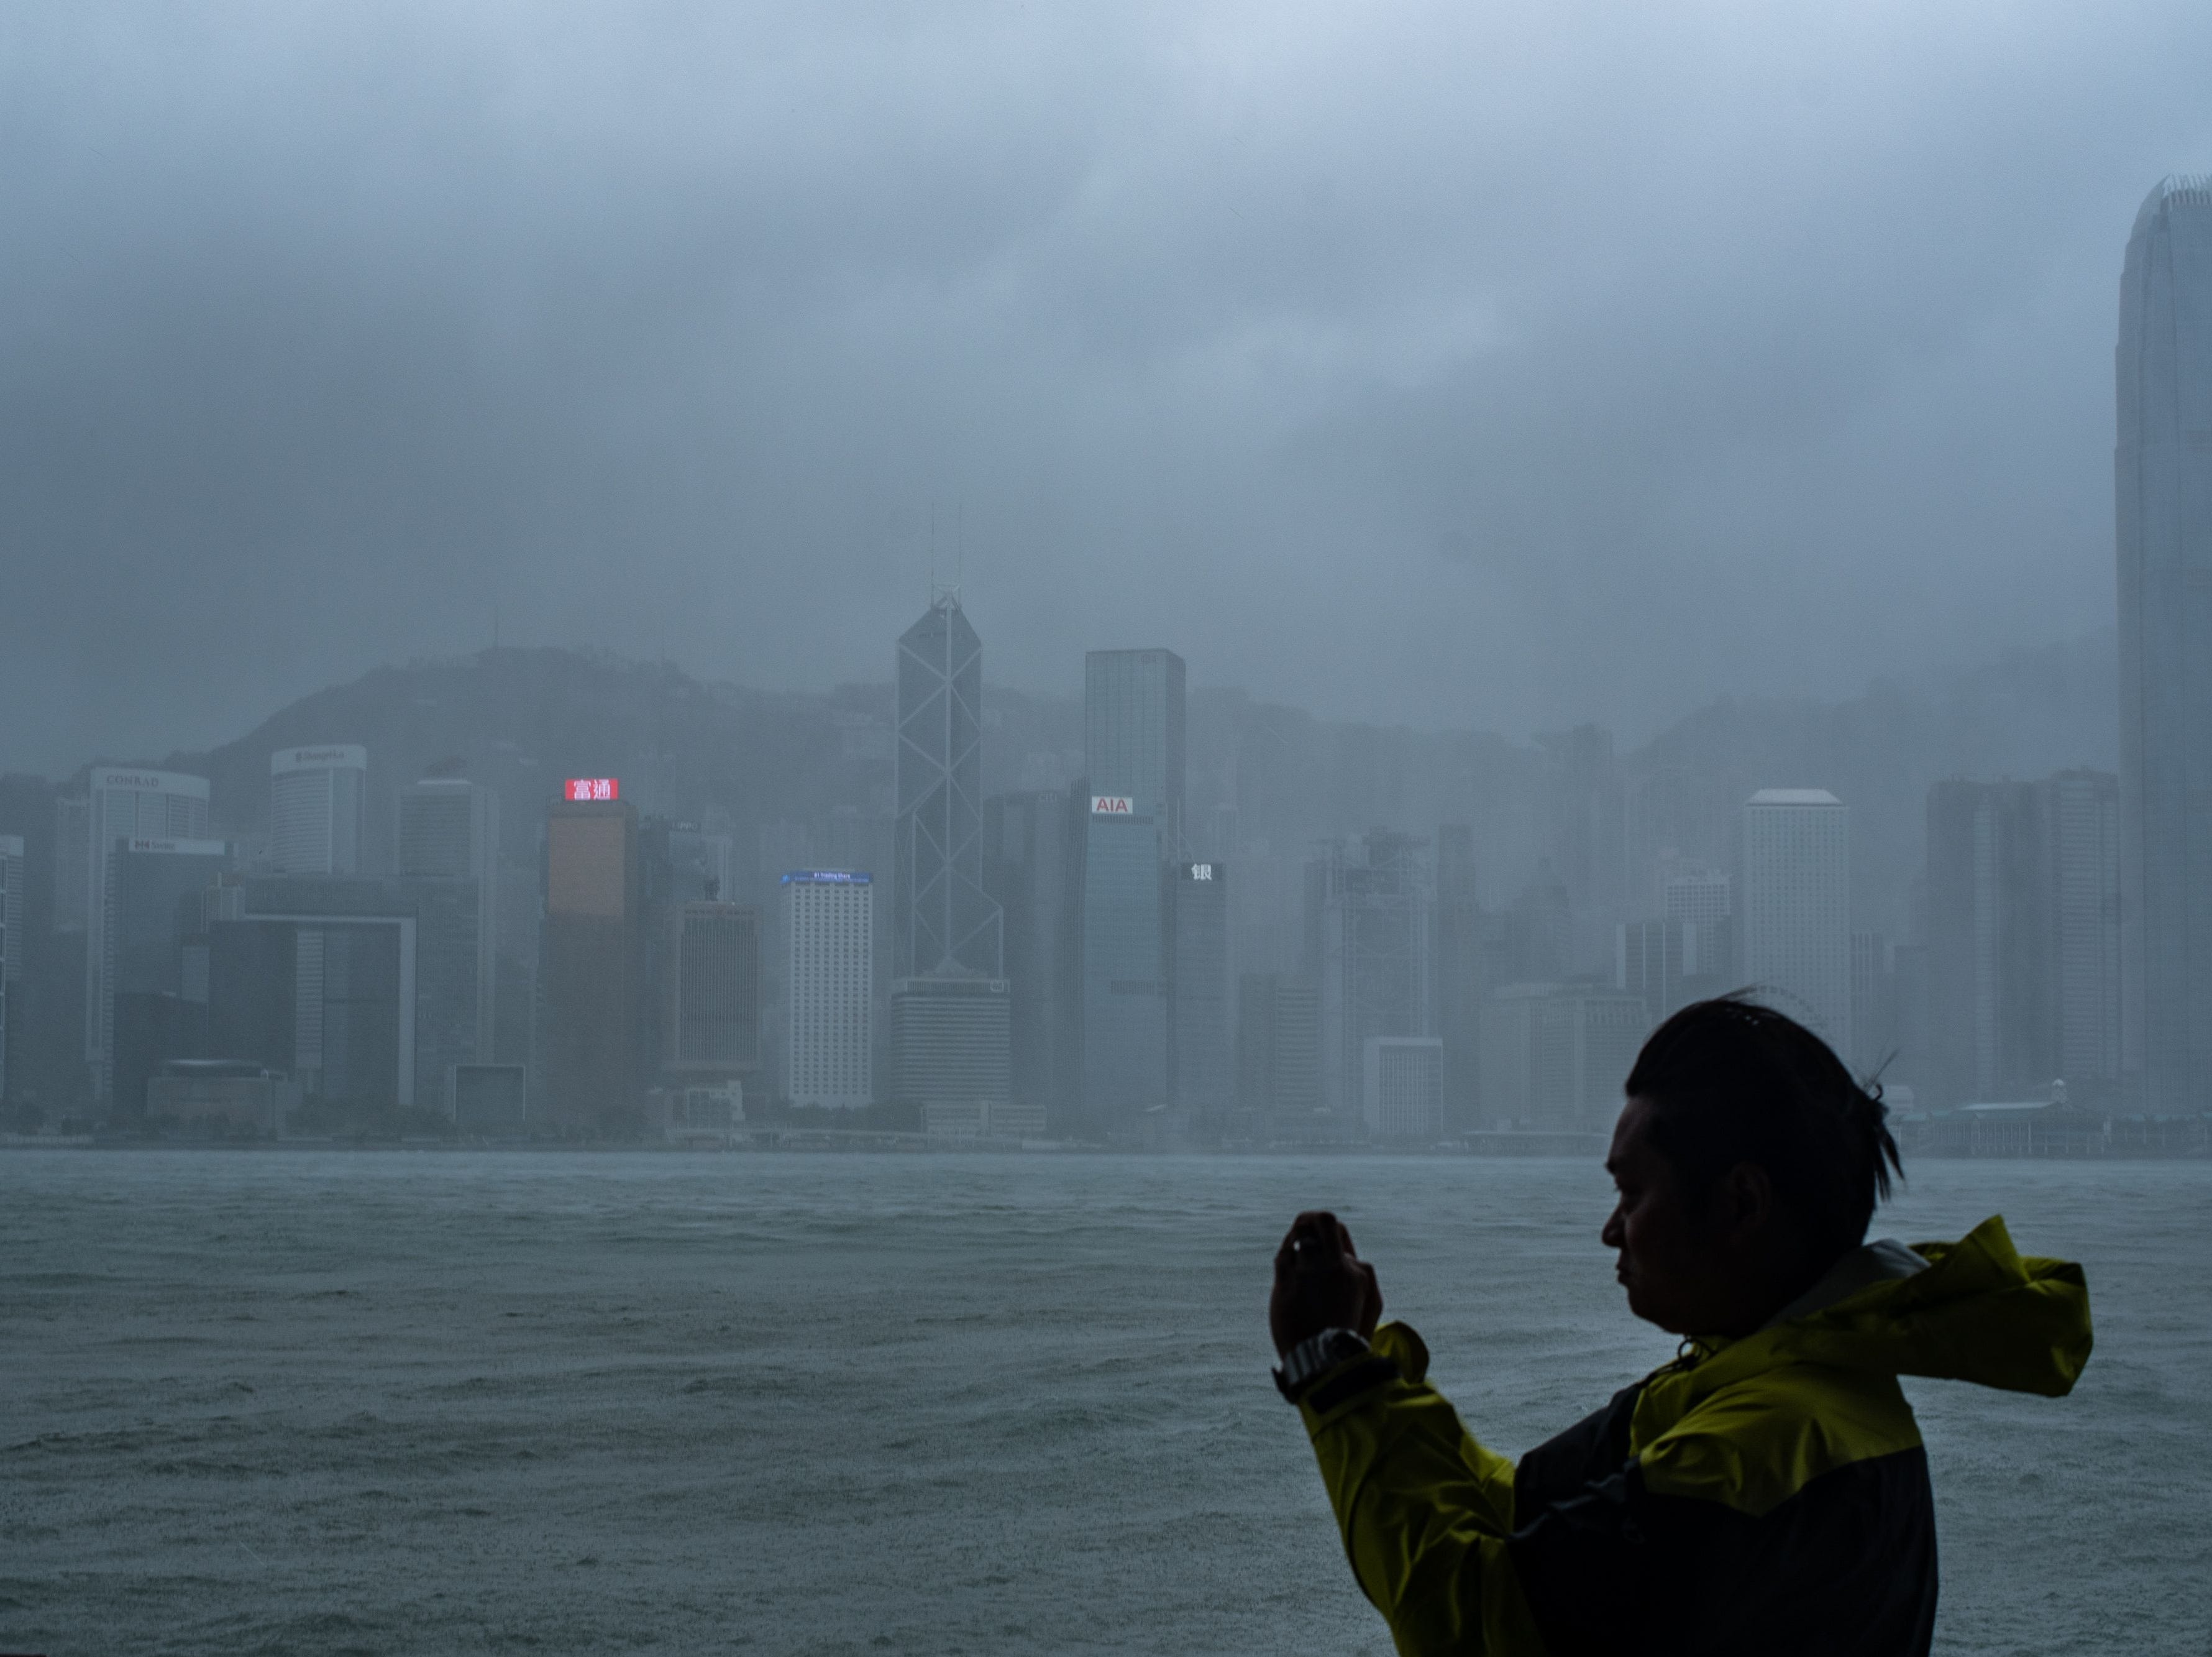 A man takes photos during the approach of super Typhoon Mangkhut to Hong Kong on Sept. 16, 2018. Super Typhoon Mangkhut has smashed through the Philippines, as the biggest storm to hit the region this year claimed the lives of its first victims and forced tens of thousands to flee their homes.